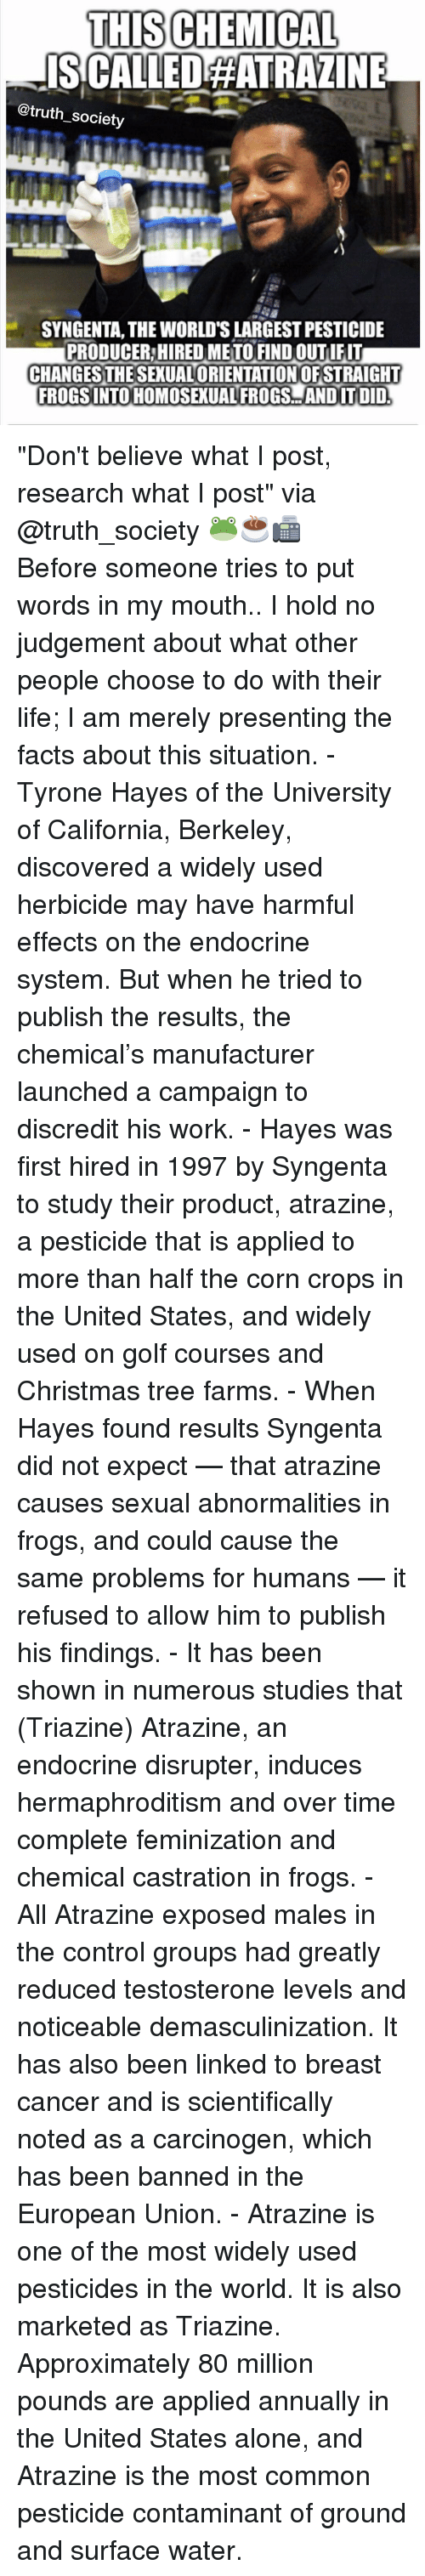 """syngenta: THISCHEMICAL  ISCALLEDAATRAZINE  Cotruth society  SYNGENTA, THE WORLDSLARGESTPESTICIDE  PRODUCER HIRED METO FIND OUT IFIT  CHANGES THESEXUALORIENTATIONOFSTRAIGHT  FROGSINTO HOMOSEXUAL FROGS ANDIT ITDID """"Don't believe what I post, research what I post"""" via @truth_society 🐸☕️📠 ・・・ Before someone tries to put words in my mouth.. I hold no judgement about what other people choose to do with their life; I am merely presenting the facts about this situation. - Tyrone Hayes of the University of California, Berkeley, discovered a widely used herbicide may have harmful effects on the endocrine system. But when he tried to publish the results, the chemical's manufacturer launched a campaign to discredit his work. - Hayes was first hired in 1997 by Syngenta to study their product, atrazine, a pesticide that is applied to more than half the corn crops in the United States, and widely used on golf courses and Christmas tree farms. - When Hayes found results Syngenta did not expect — that atrazine causes sexual abnormalities in frogs, and could cause the same problems for humans — it refused to allow him to publish his findings. - It has been shown in numerous studies that (Triazine) Atrazine, an endocrine disrupter, induces hermaphroditism and over time complete feminization and chemical castration in frogs. - All Atrazine exposed males in the control groups had greatly reduced testosterone levels and noticeable demasculinization. It has also been linked to breast cancer and is scientifically noted as a carcinogen, which has been banned in the European Union. - Atrazine is one of the most widely used pesticides in the world. It is also marketed as Triazine. Approximately 80 million pounds are applied annually in the United States alone, and Atrazine is the most common pesticide contaminant of ground and surface water."""